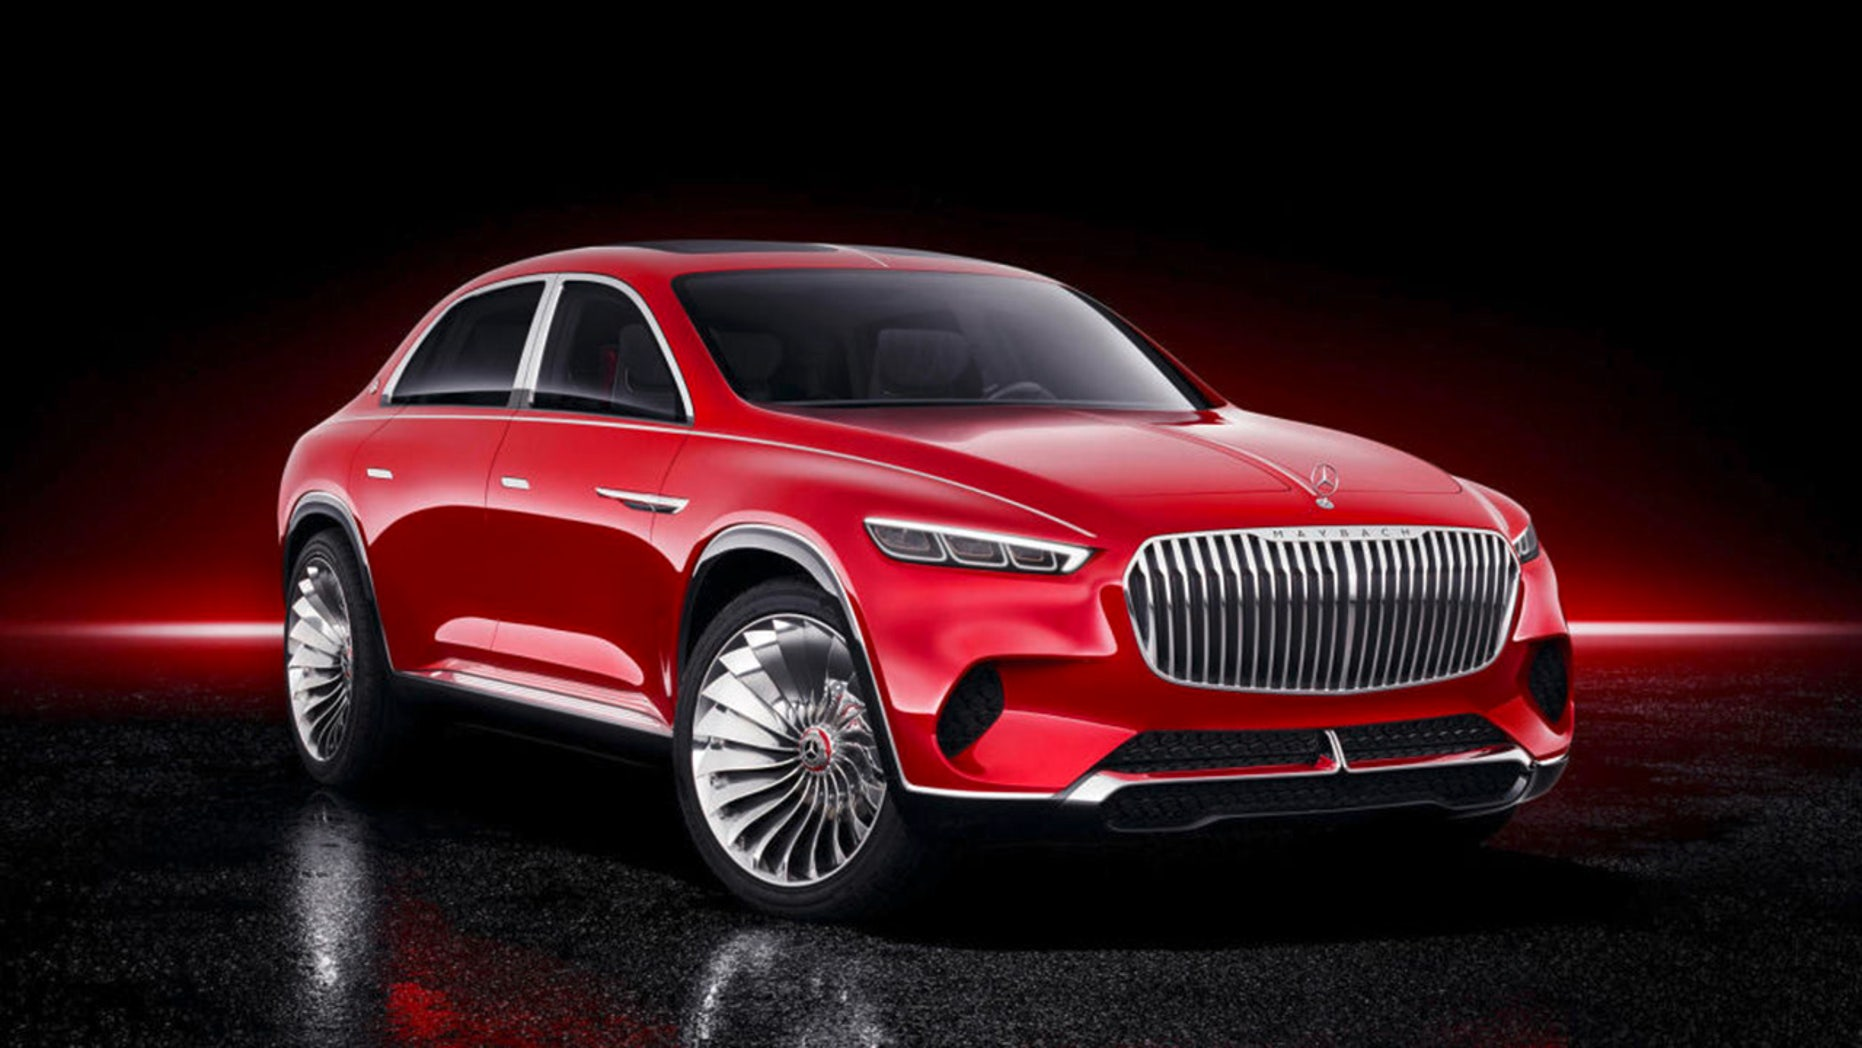 The Ultimate Luxury may be a sneak peek of the new model.